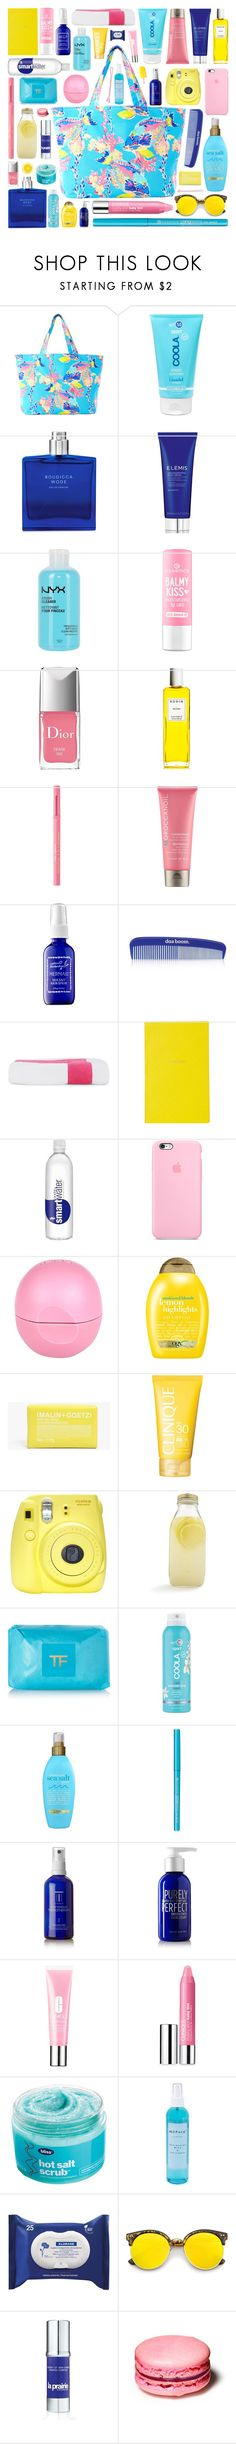 """//Gonna soak up the sun//"" by the-key-to-my-heart ❤ liked on Polyvore featuring beauty, Lilly Pulitzer, COOLA Suncare, Boudicca, Elemis, NYX, Rodin, Moroccanoil, Captain Blankenship and Das Boom Industries"